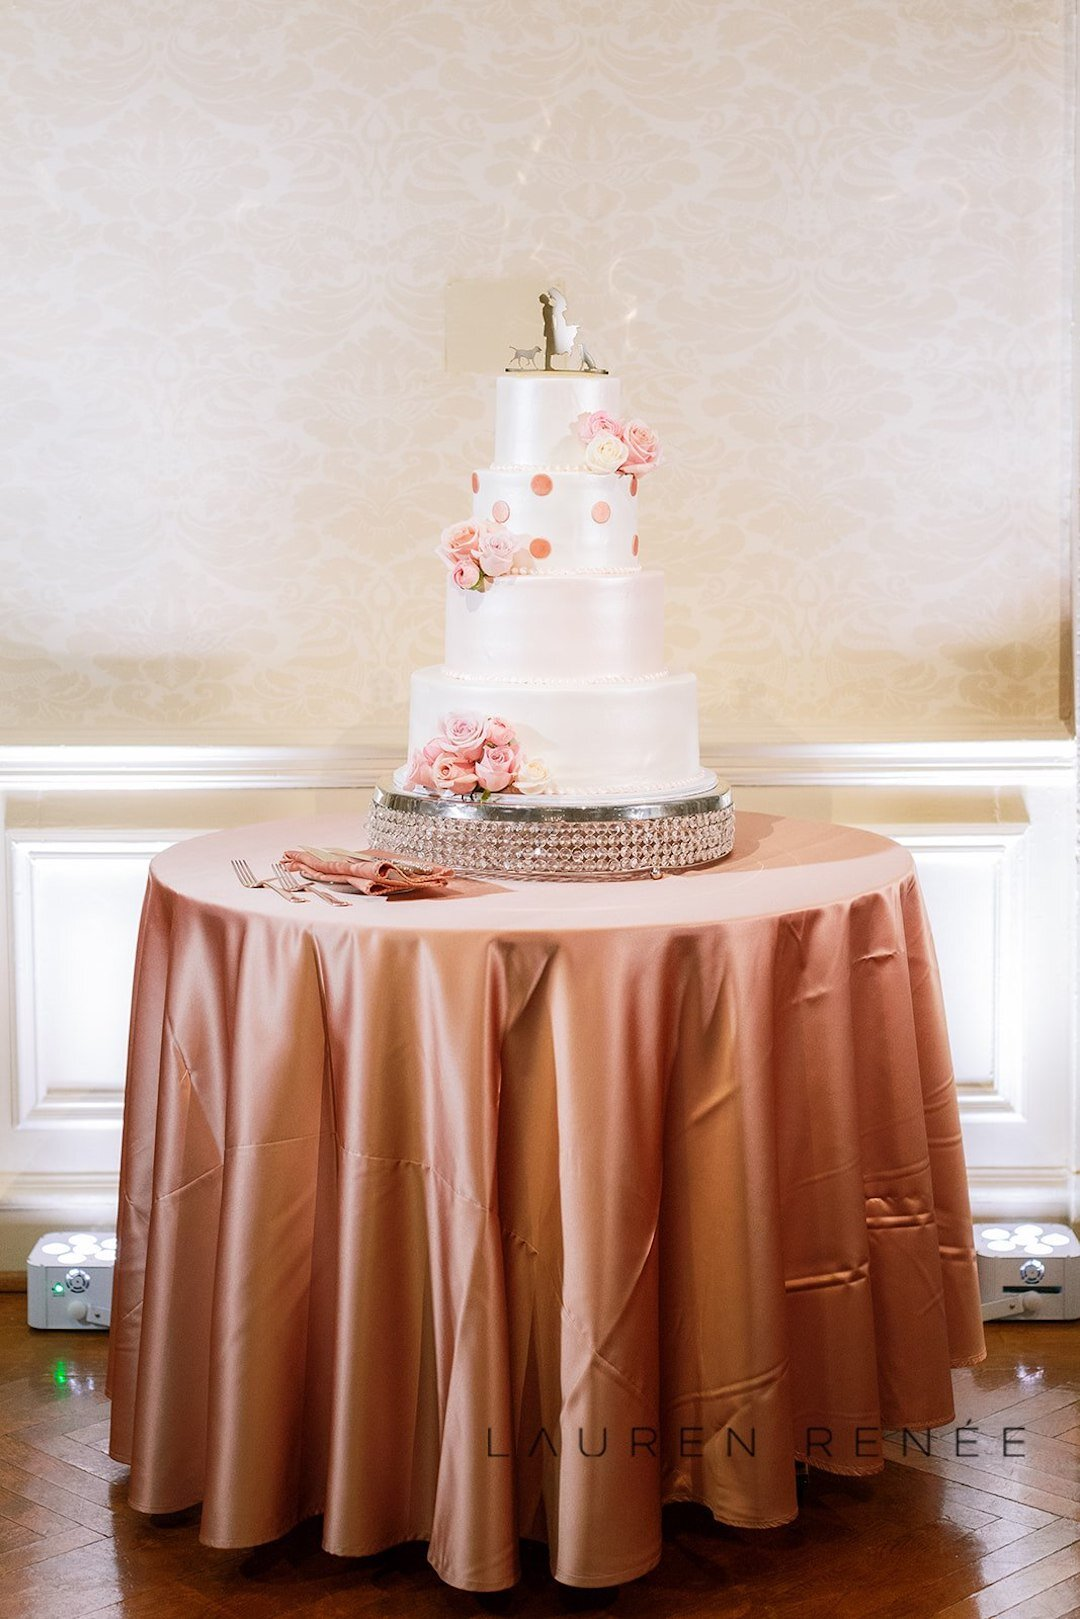 Oakmont Bakery Wedding Cake: Romantic Blush Wedding at the Pittsburgh Field Club planned by Exhale Events. See more at exhale-events.com!